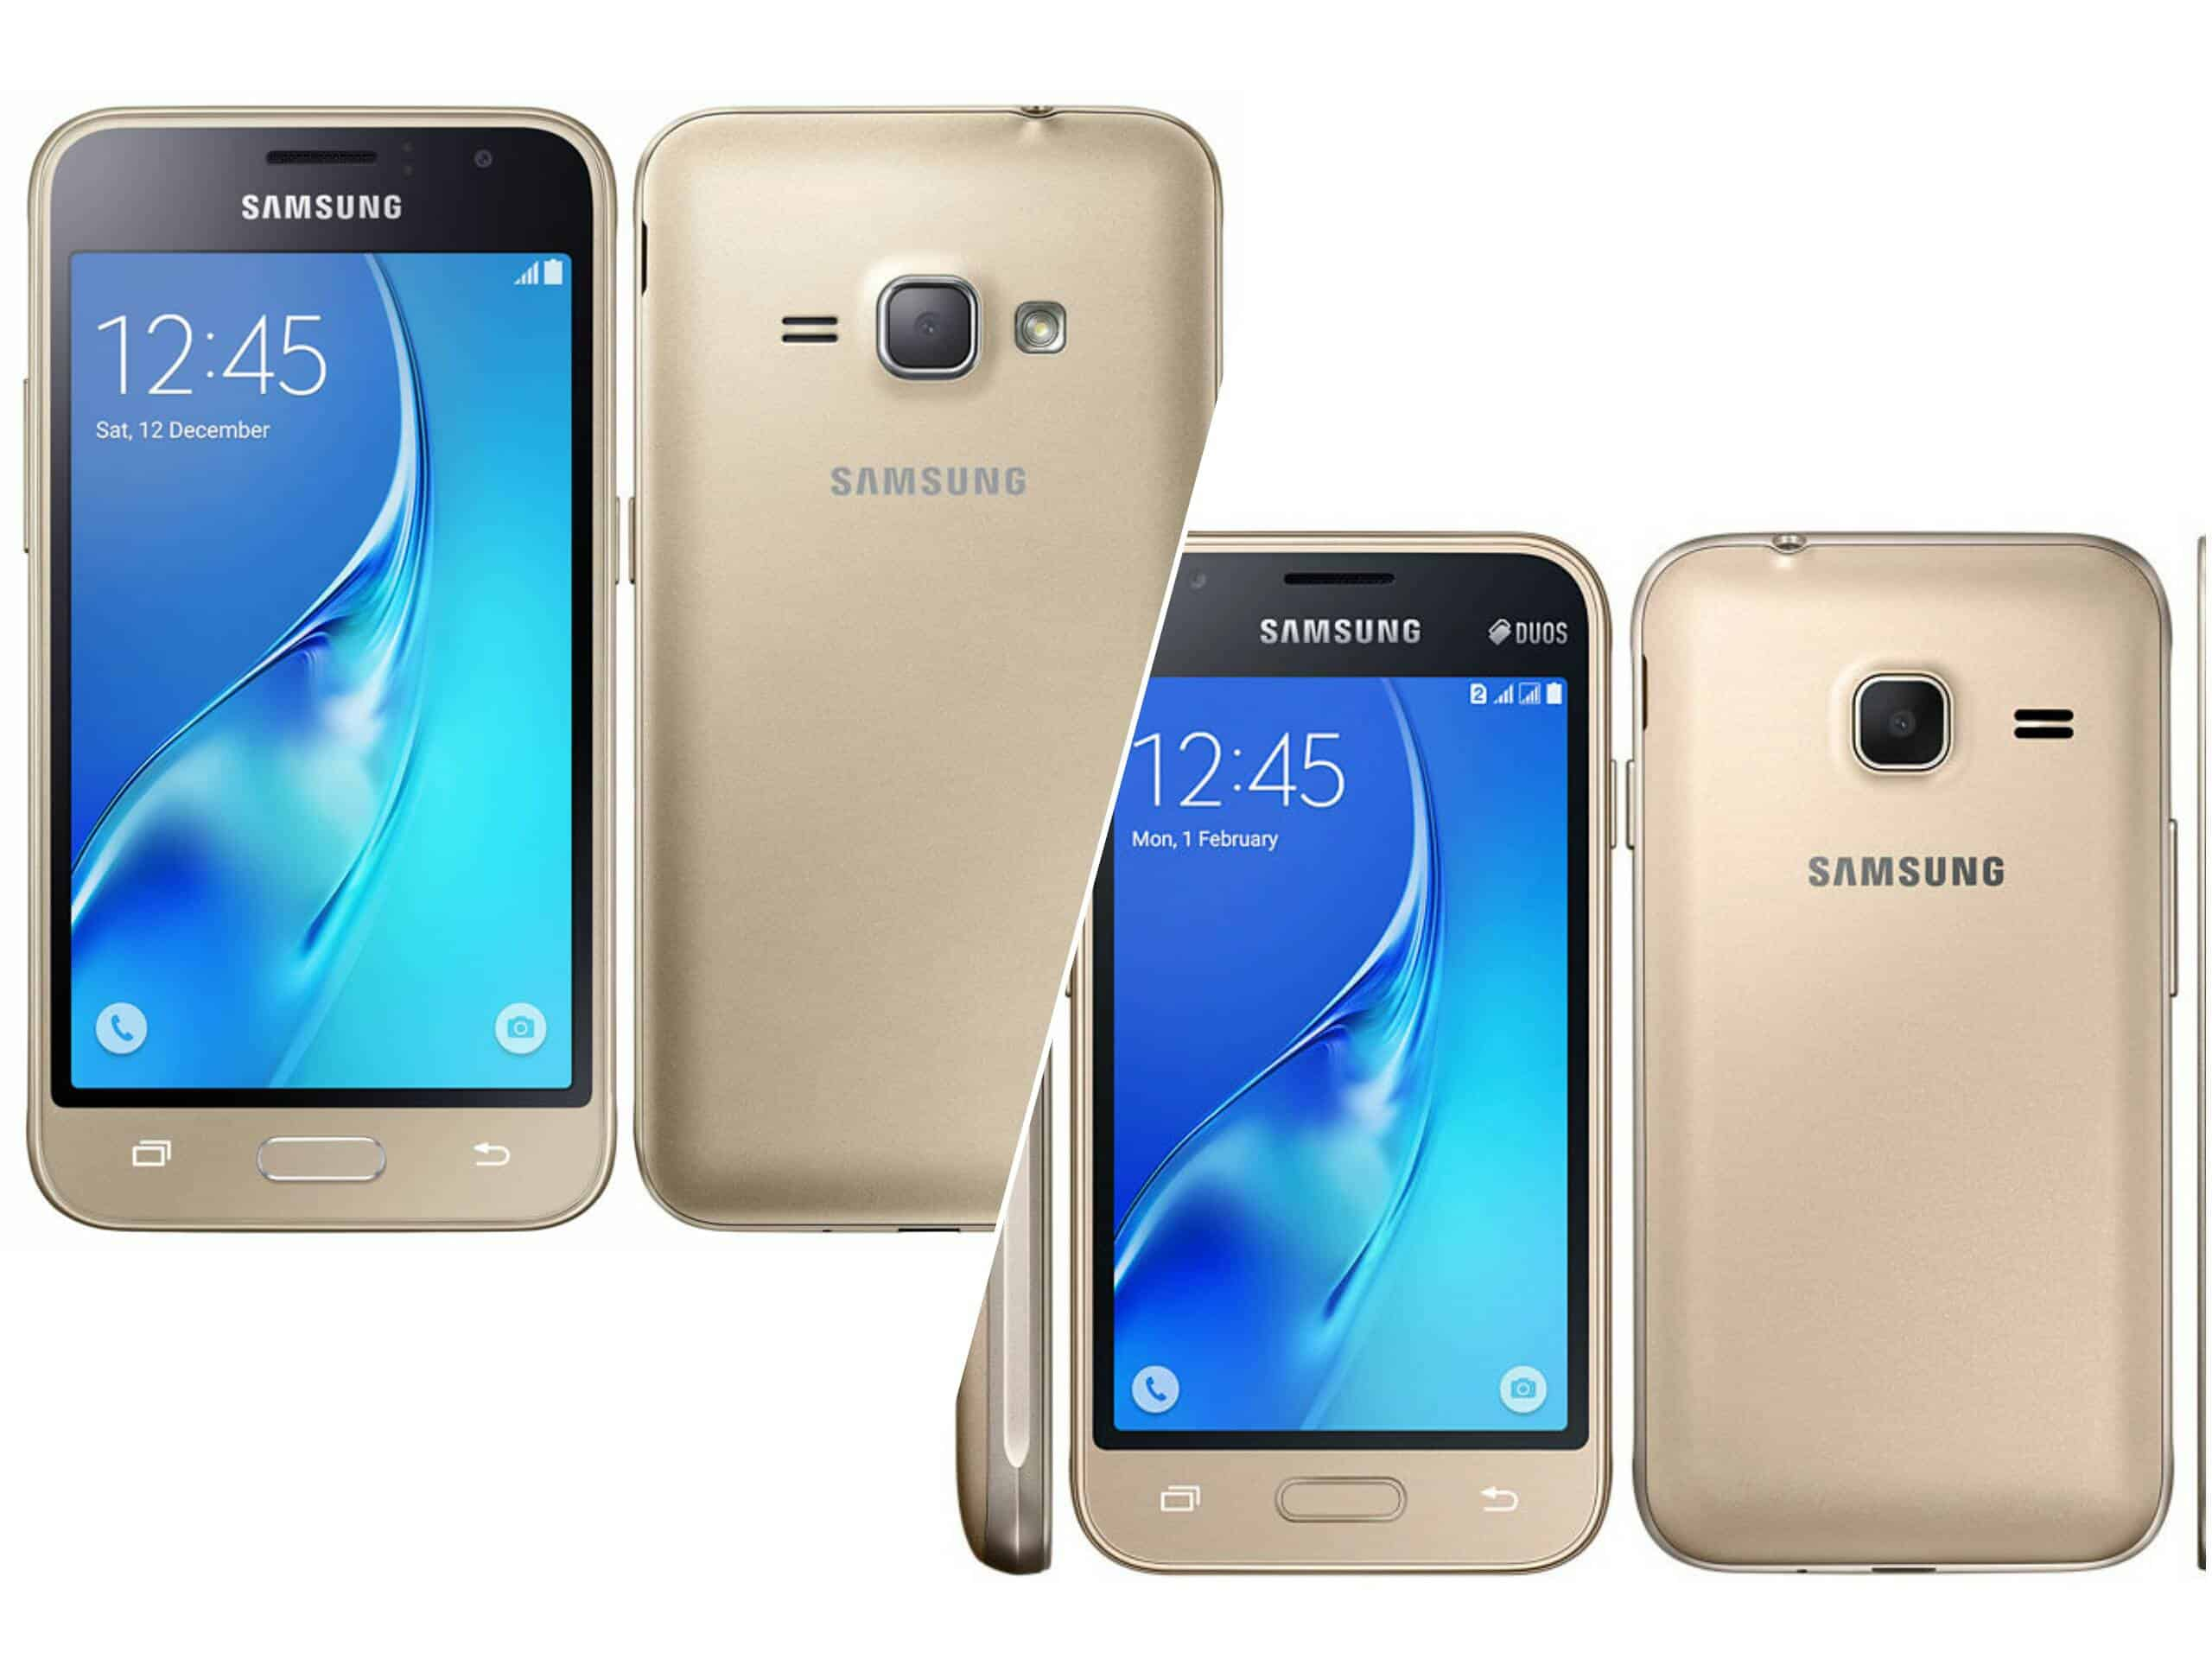 Samsung Galaxy J1 and J1 Mini_1